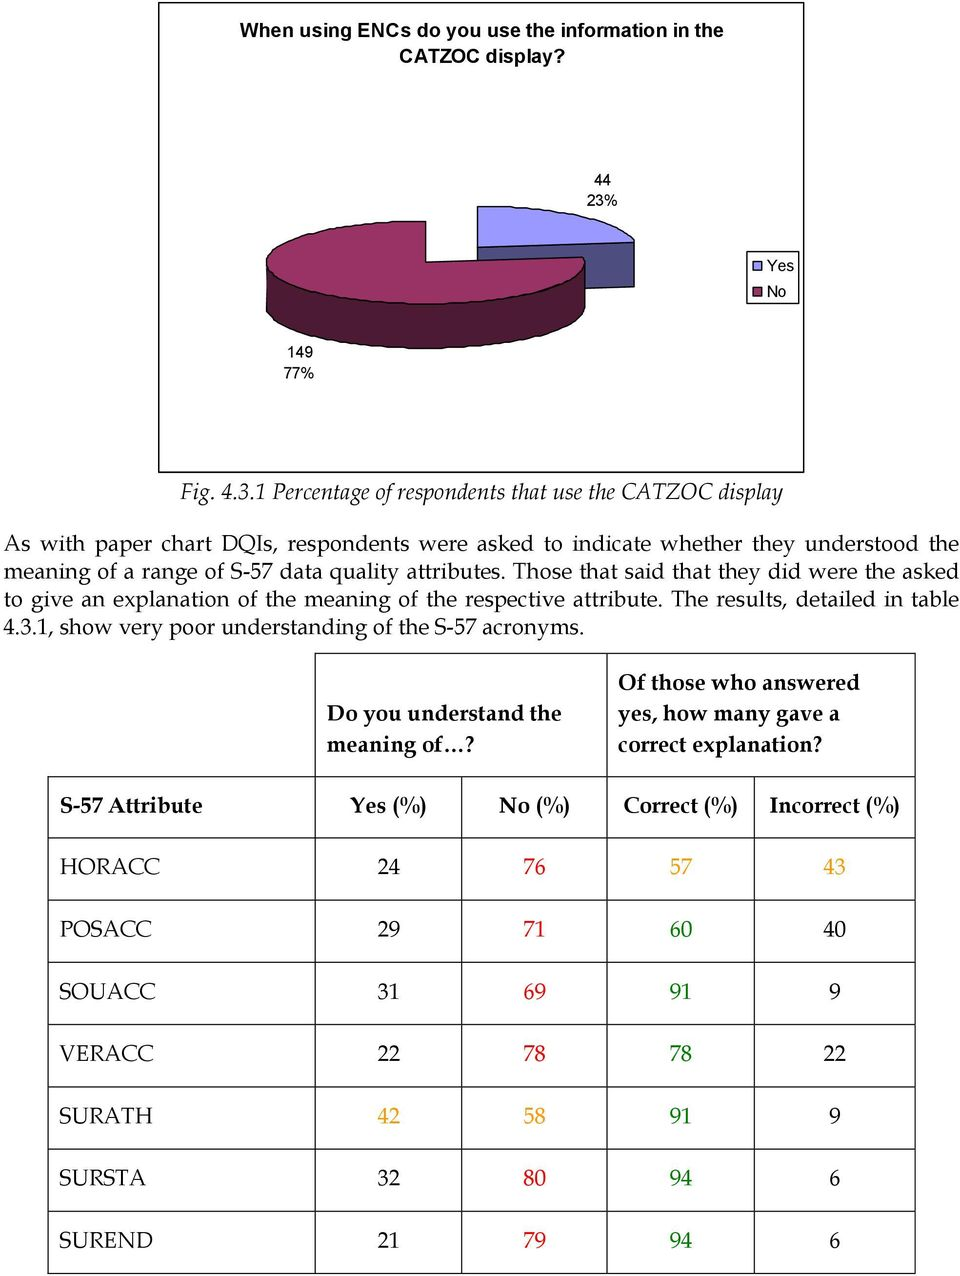 1 Percentage of respondents that use the CATZOC display As with paper chart DQIs, respondents were asked to indicate whether they understood the meaning of a range of S-57 data quality